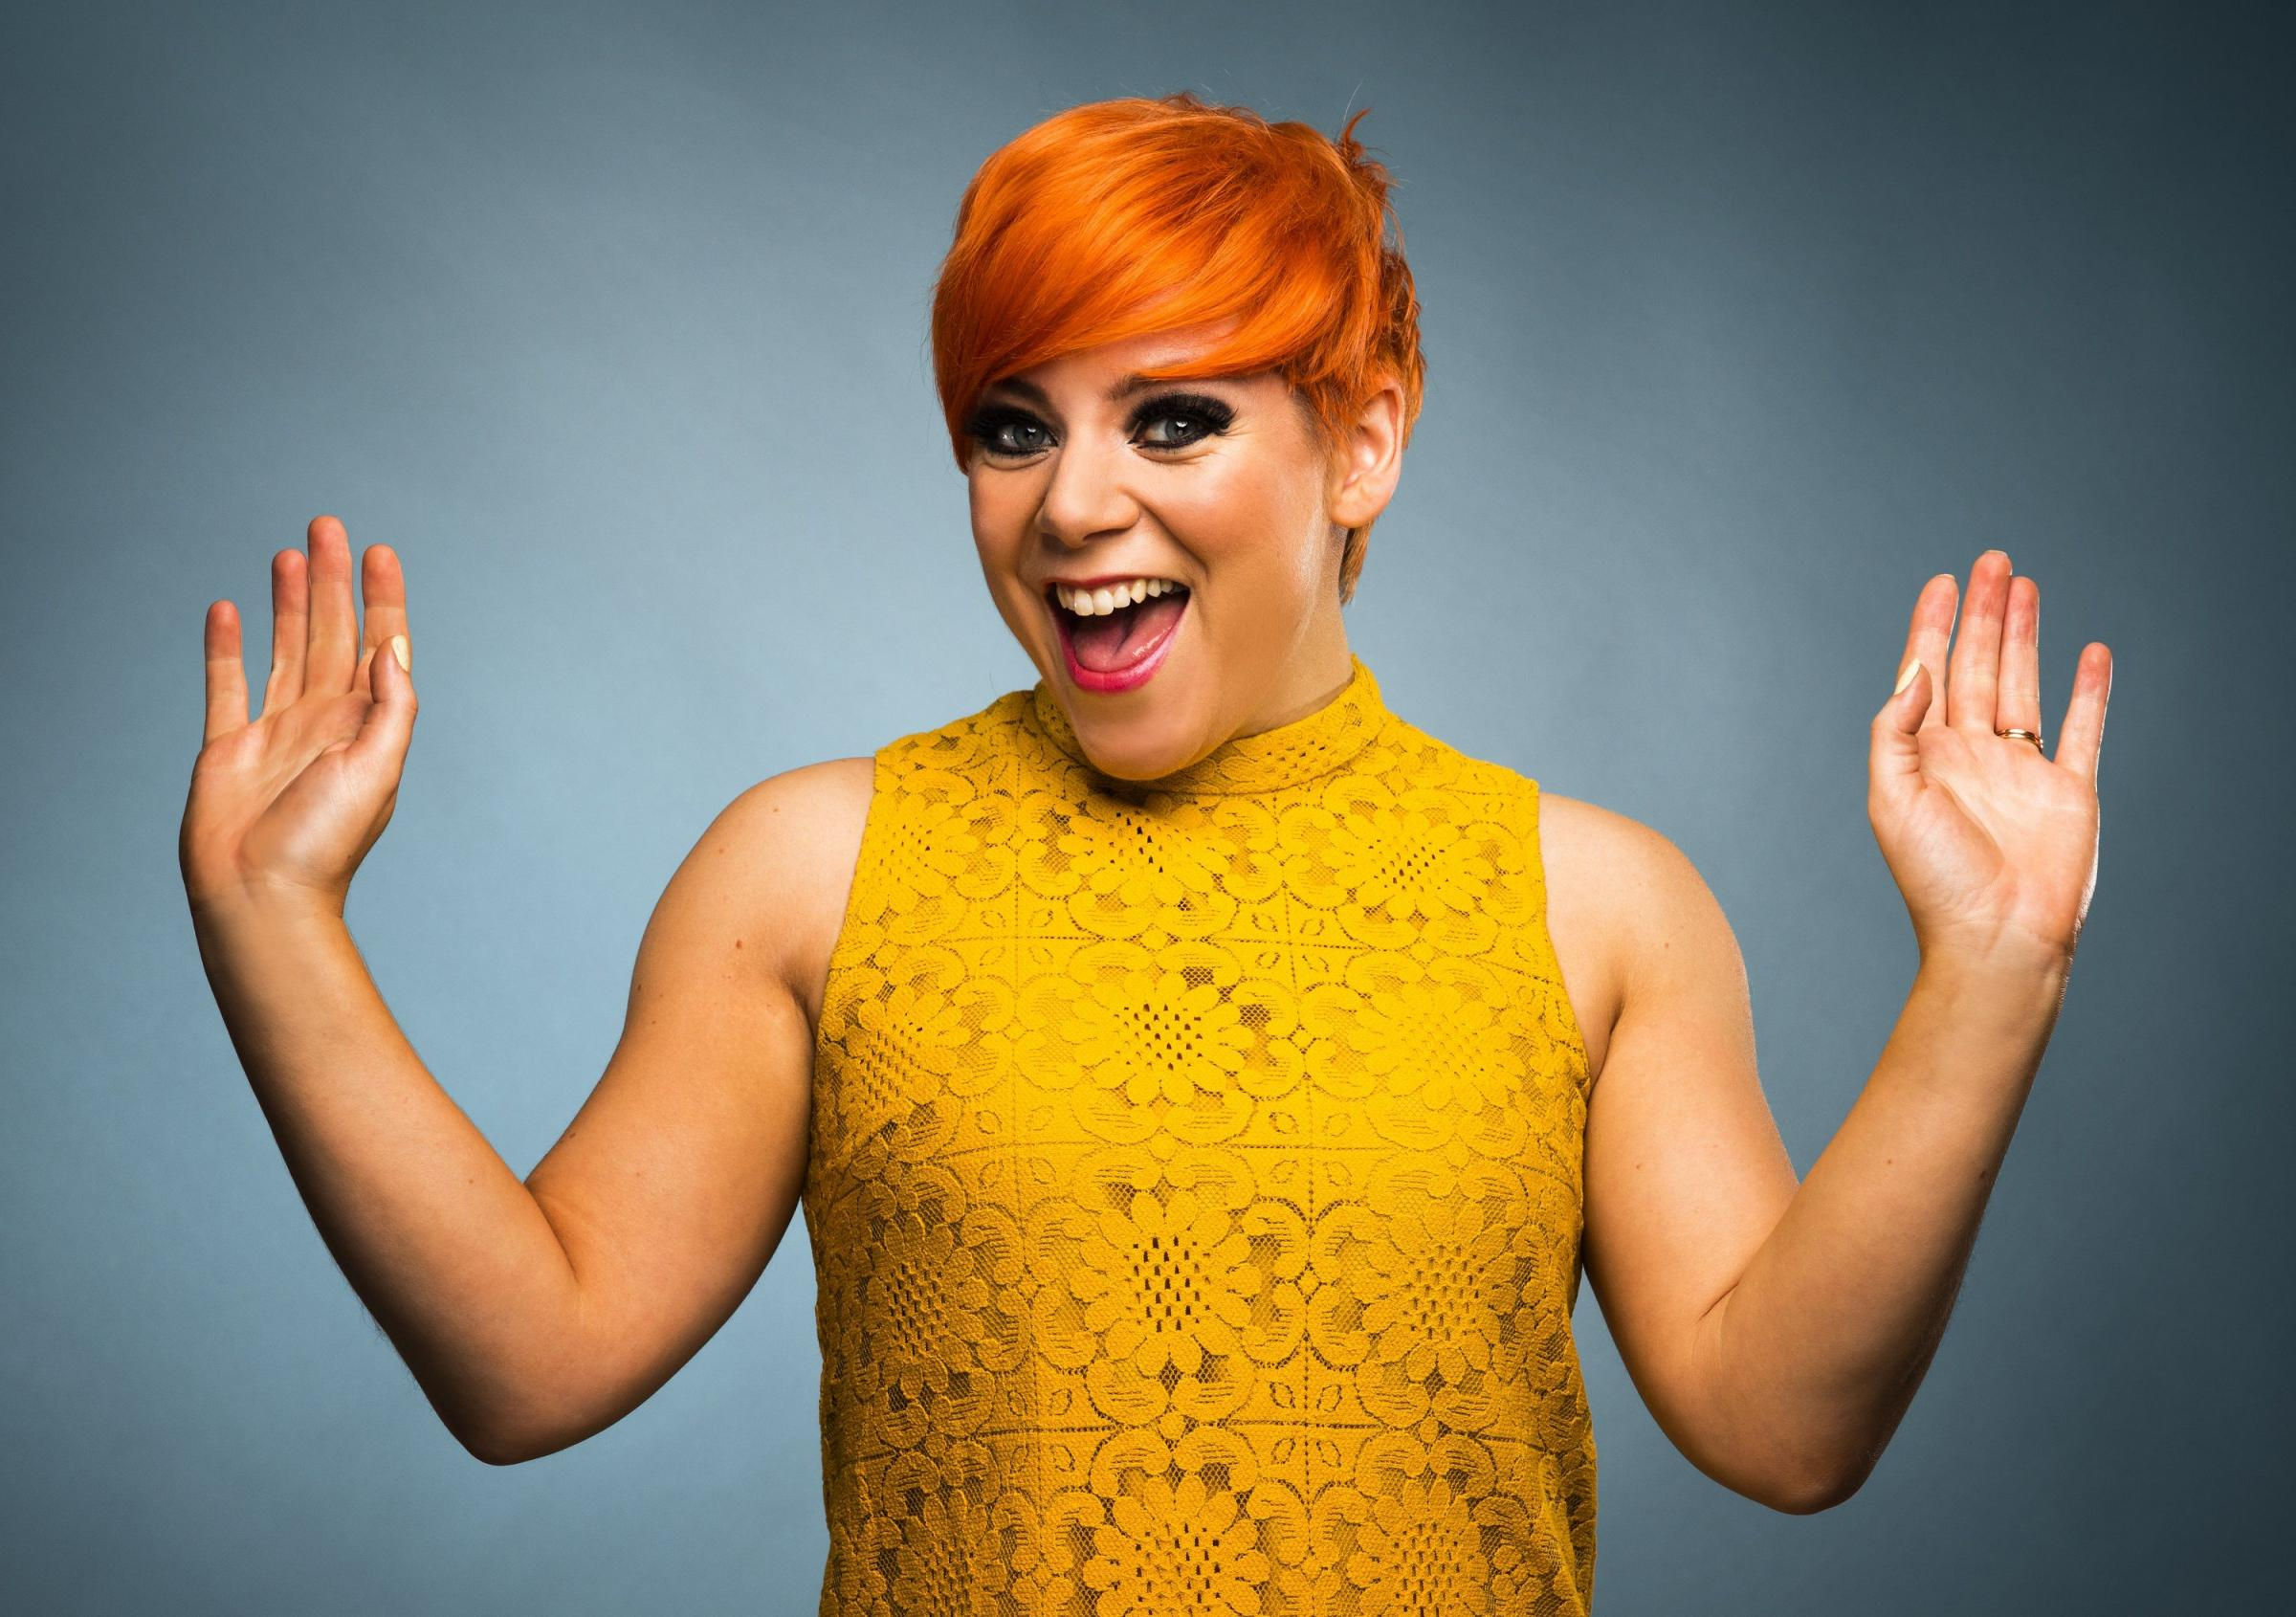 BIG INTERVIEW: Victoria Jones will creates shades of the 60s as Cilla Black at the McMillan Theatre in Bridgwater